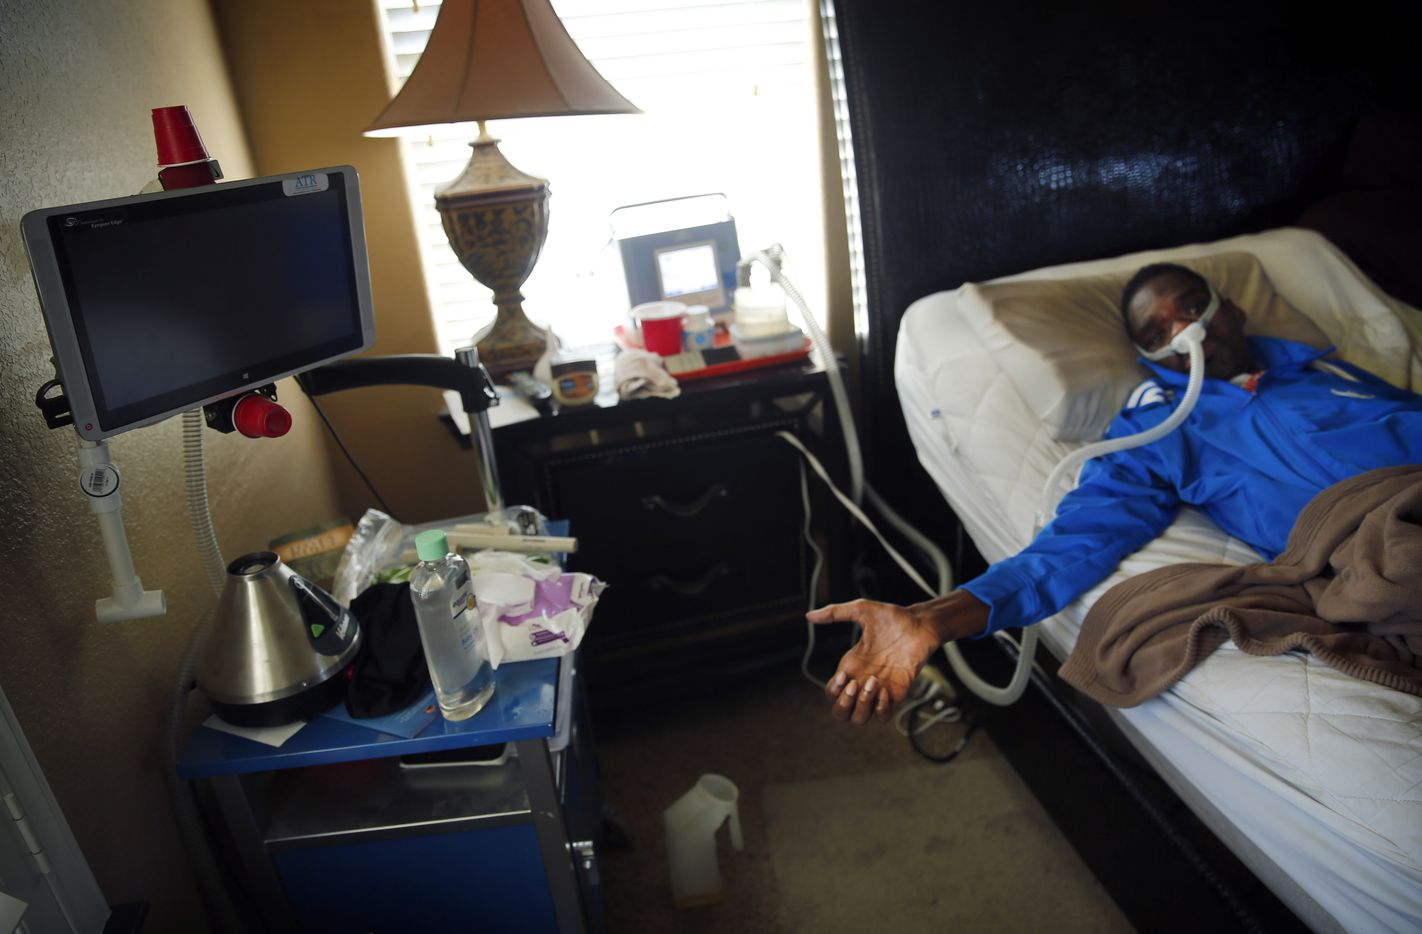 Rickey Dixon uses a thumbs up signal when something excites him or answers yes to a question. Here he is on an aspirator as he lays in bed at their Red Oak, Texas home, Friday, April 7, 2017.  (Tom Fox/The Dallas Morning News)